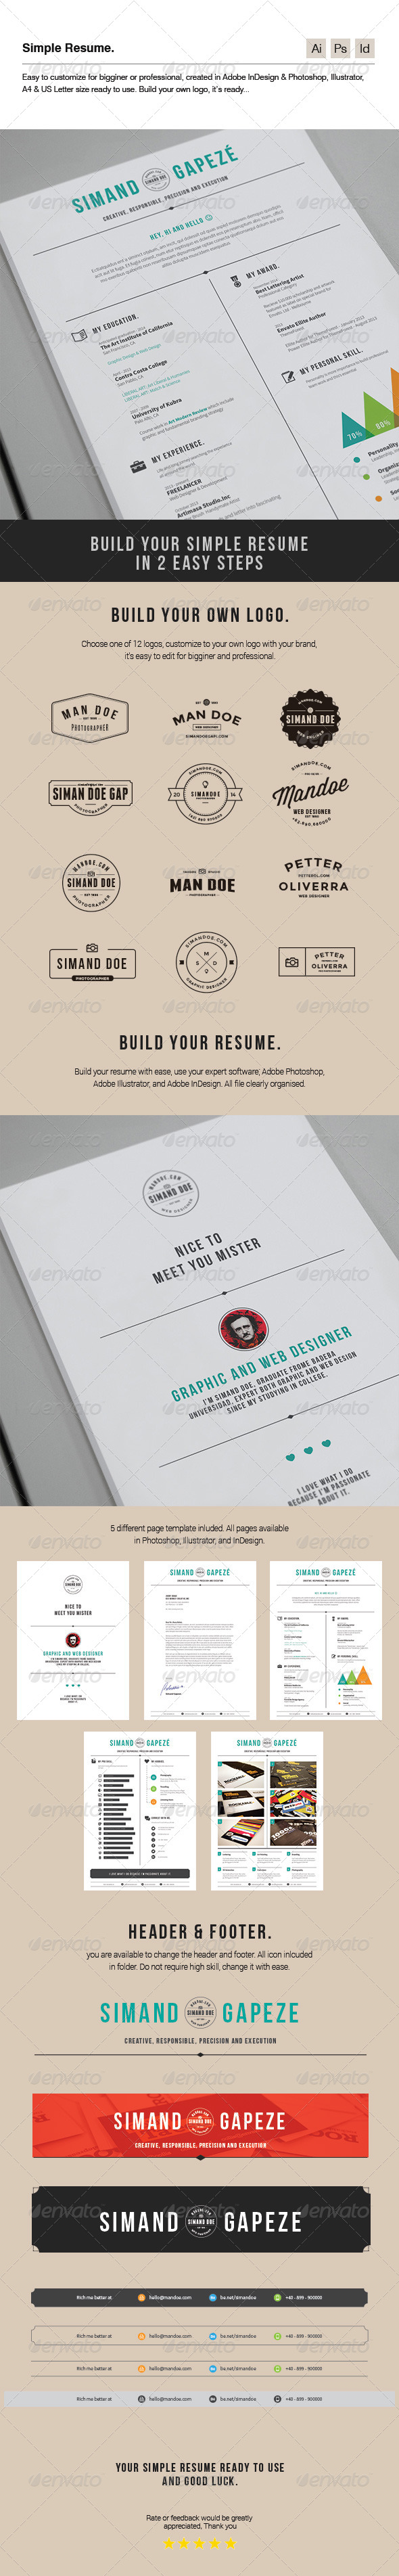 GraphicRiver Simple Resume 7286887